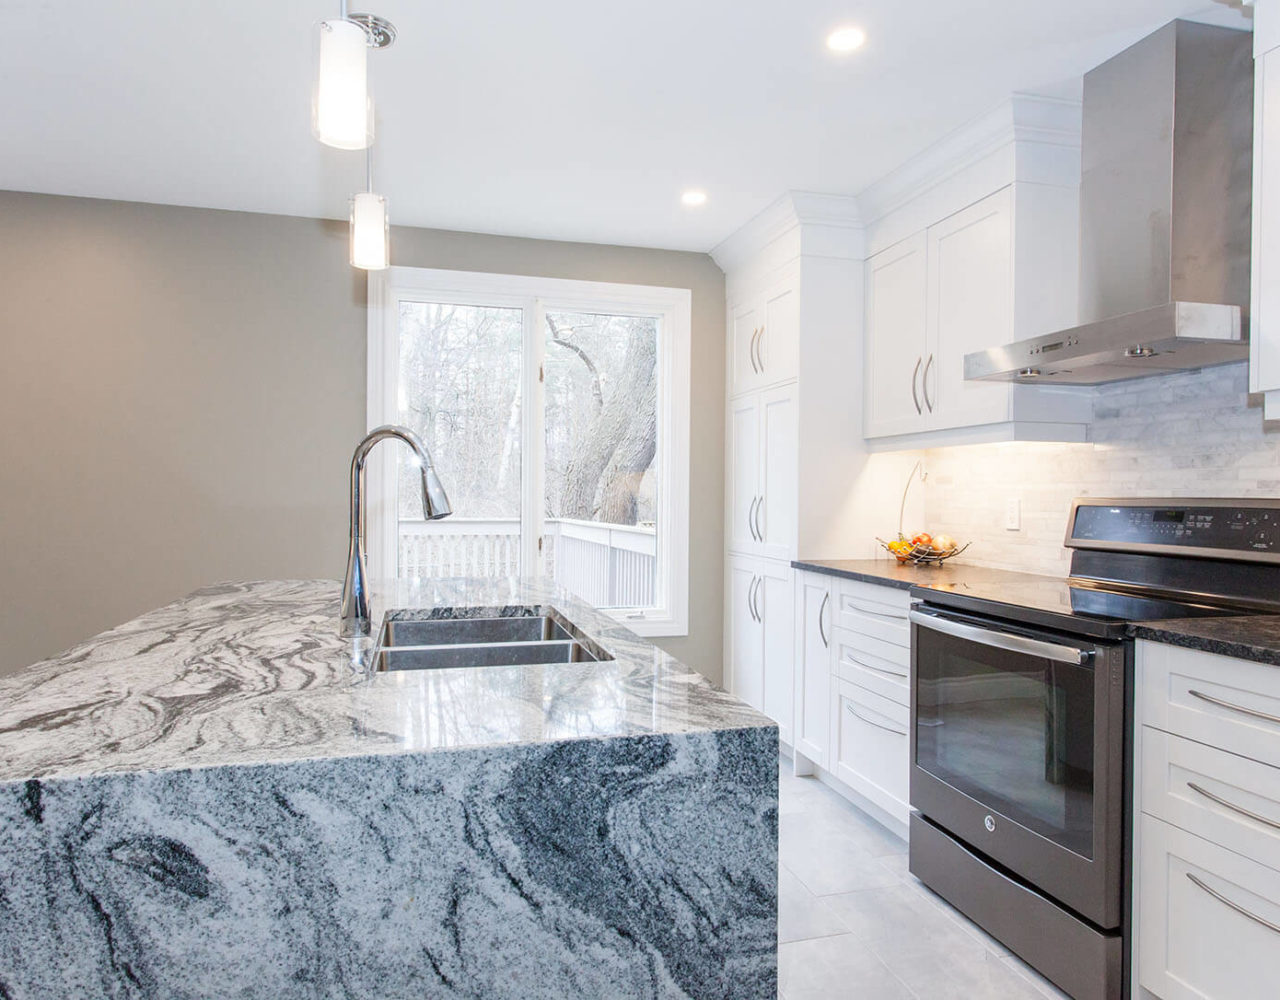 Island - Viscount White Granite, Perimeter- Silver Pearl Granite